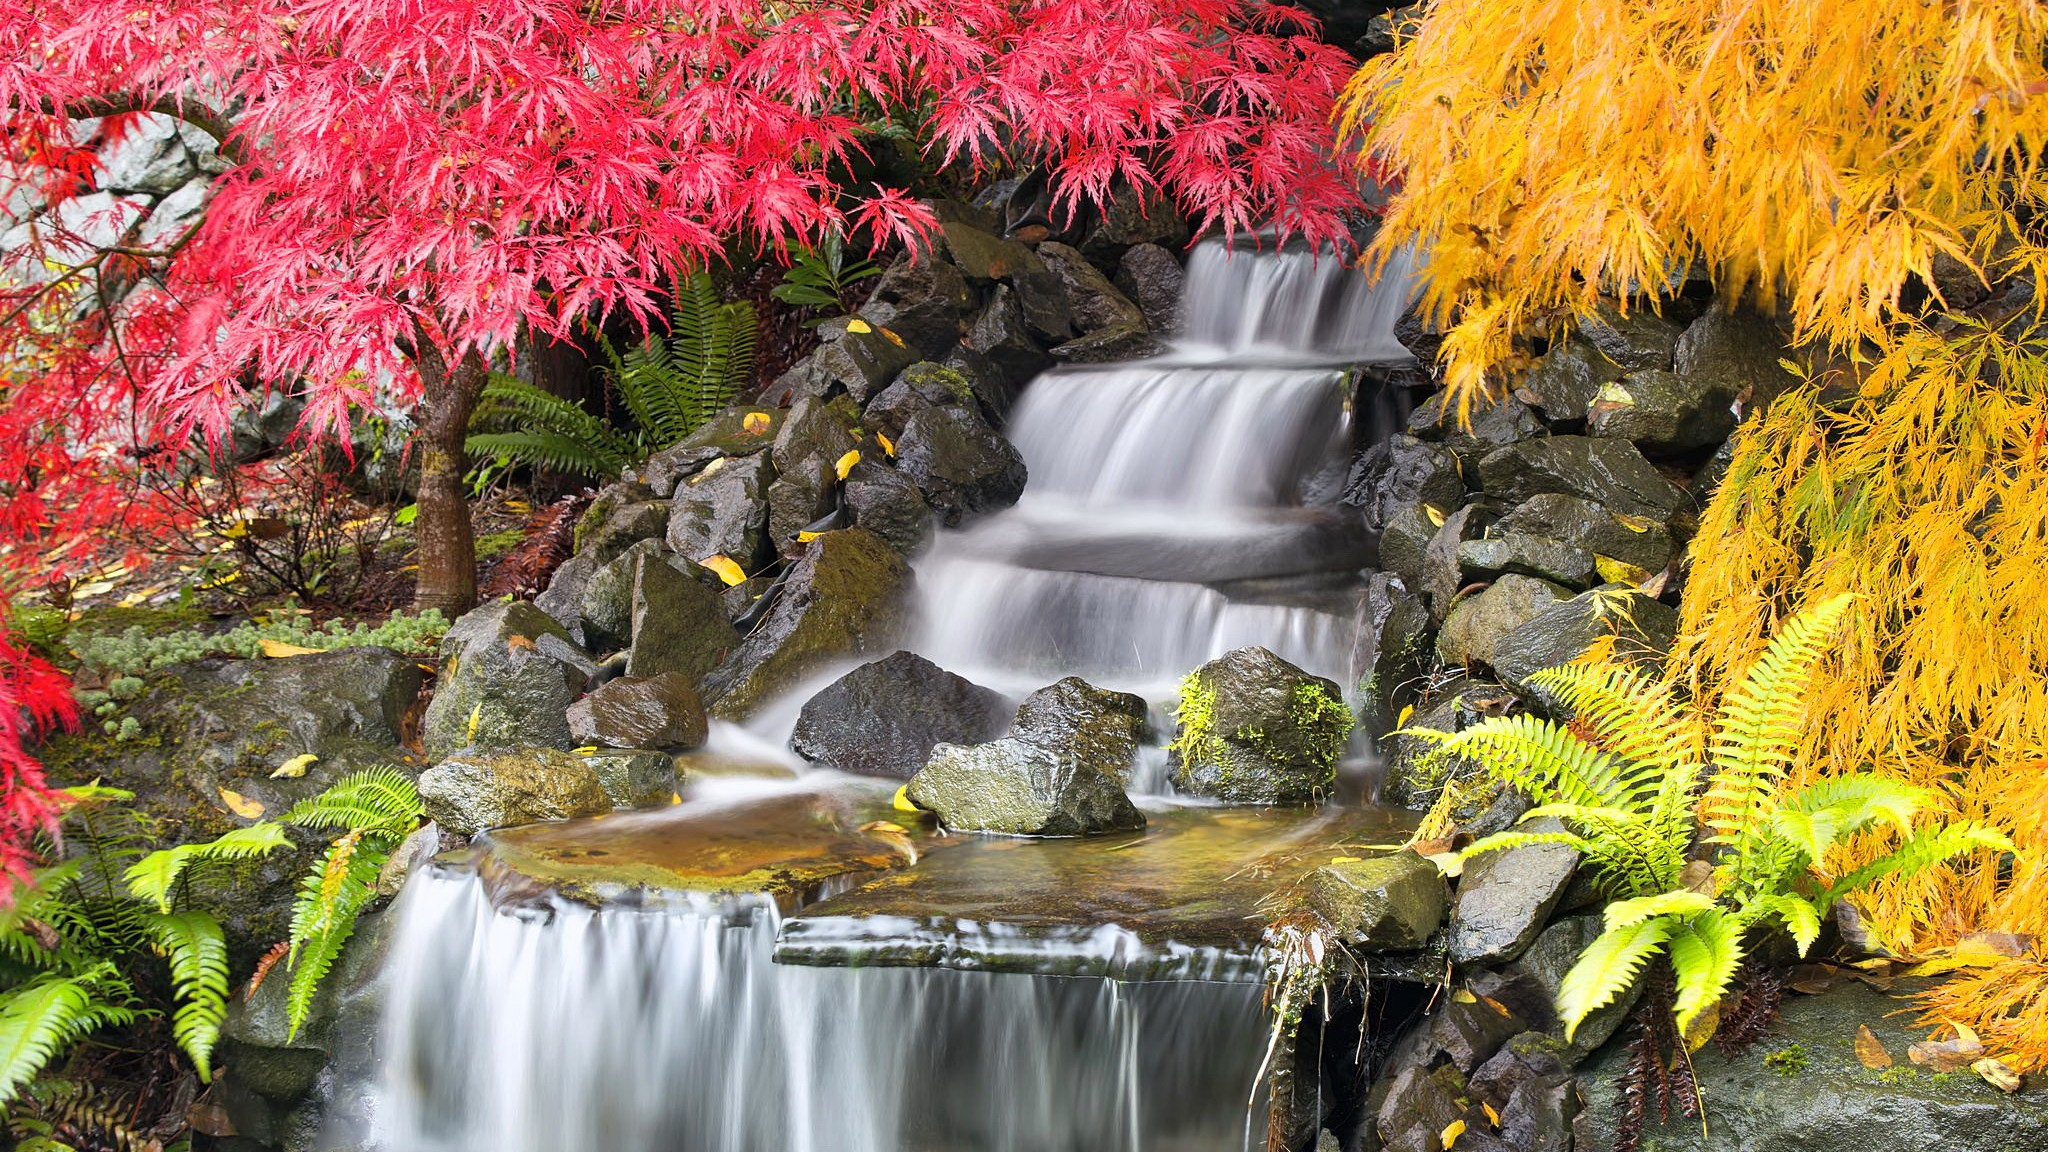 Hinterhof wasserfall wallpaper 14620 for Cascadas para jardin fotos